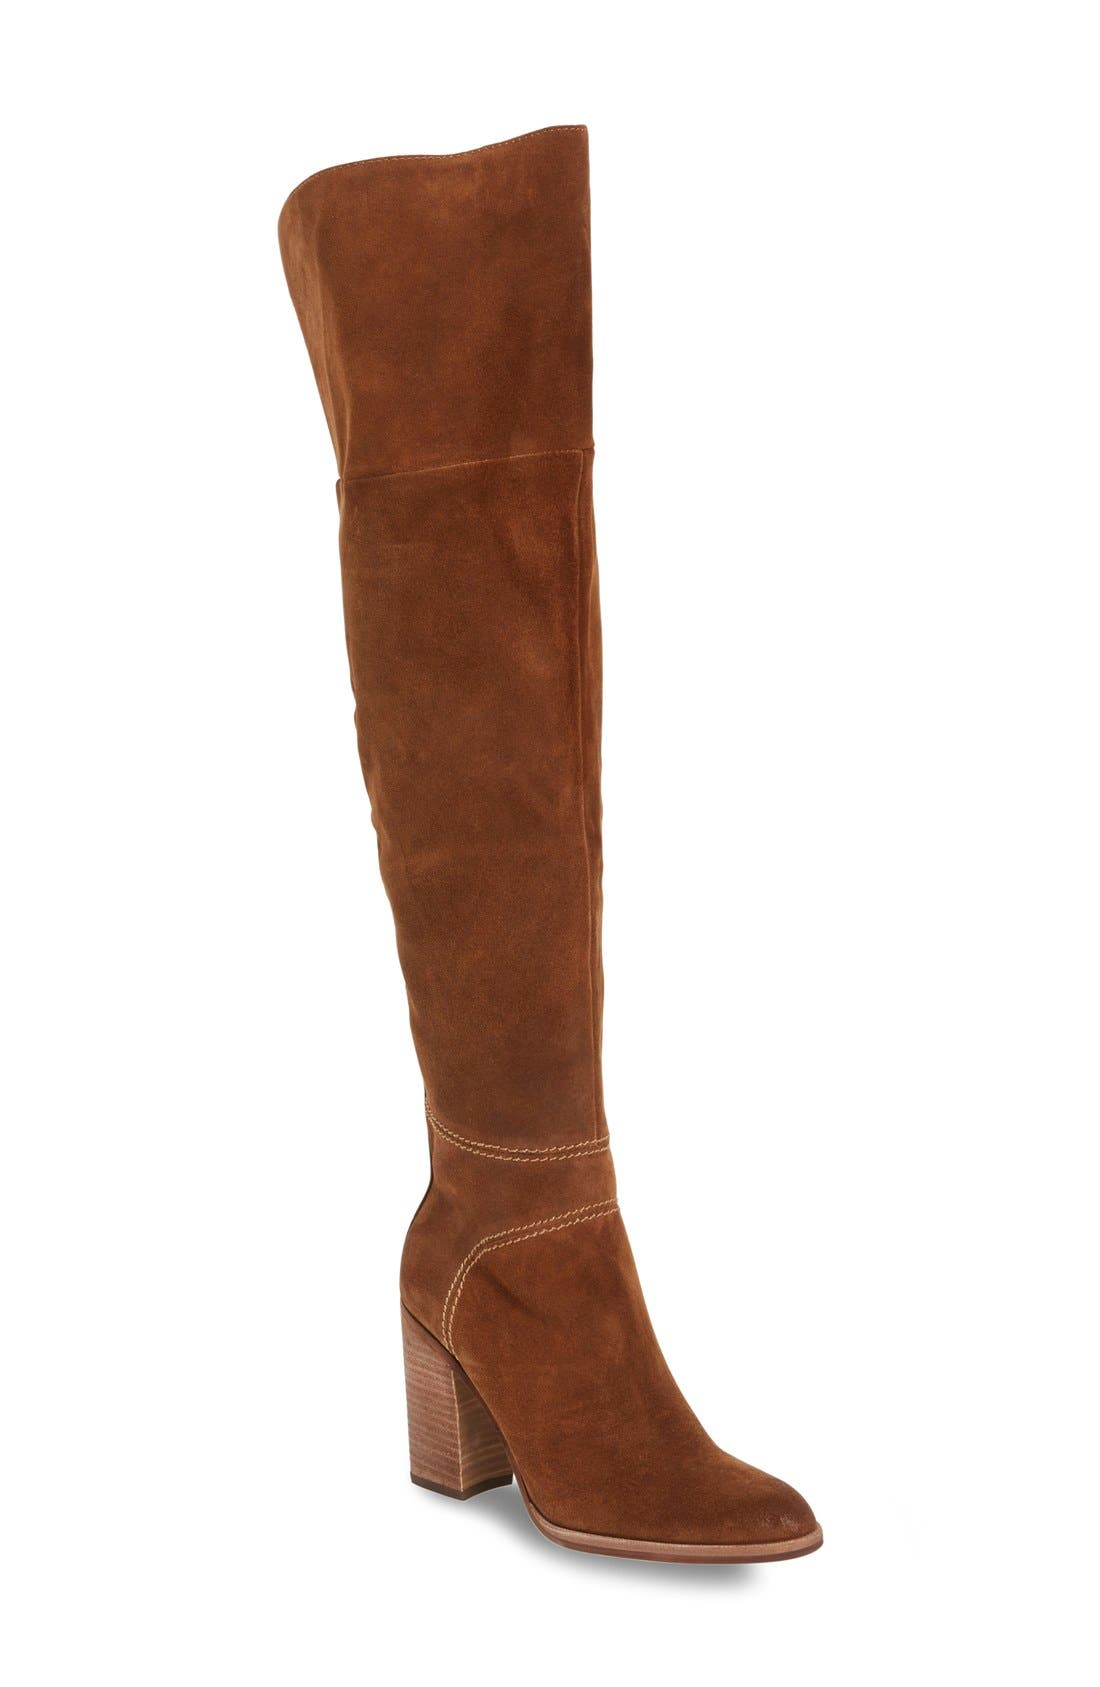 Main Image - Dolce Vita 'Cash' Over the Knee Boot (Women)